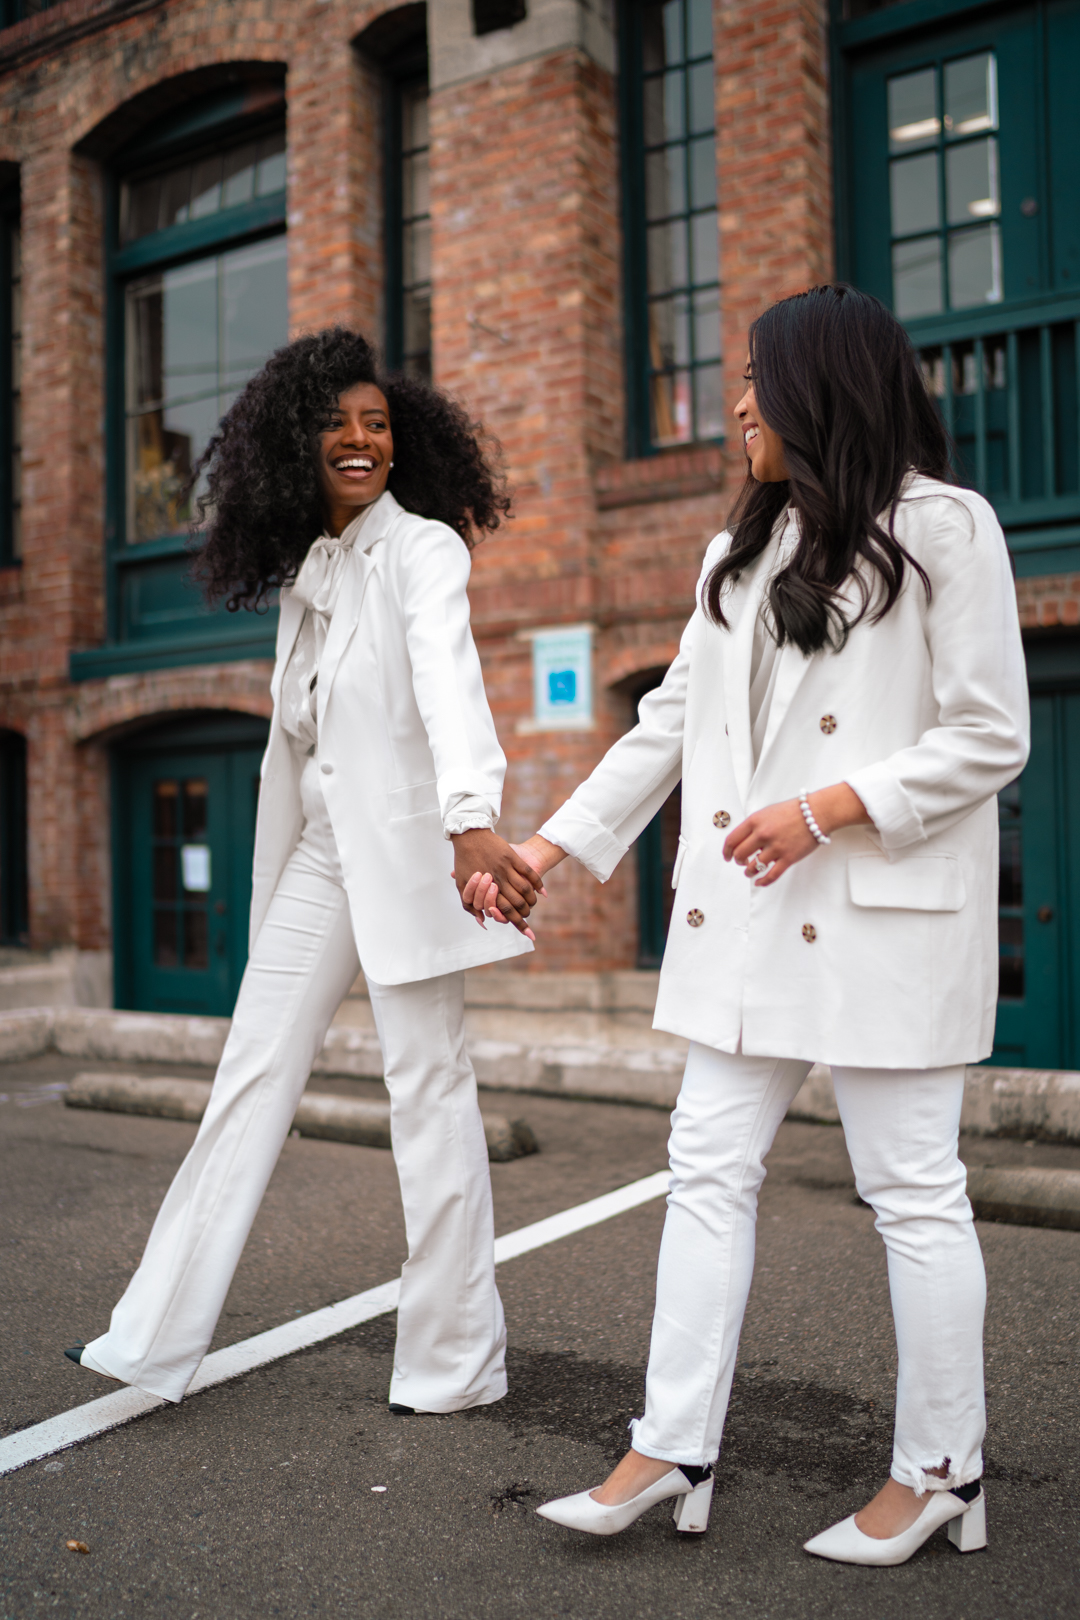 best friend photo shoot ideas - Inauguration Day 2021 - Kamala Harris inspired outfit - Women in White Suits - image from www.emmasedition.com - copyright @emmasedition